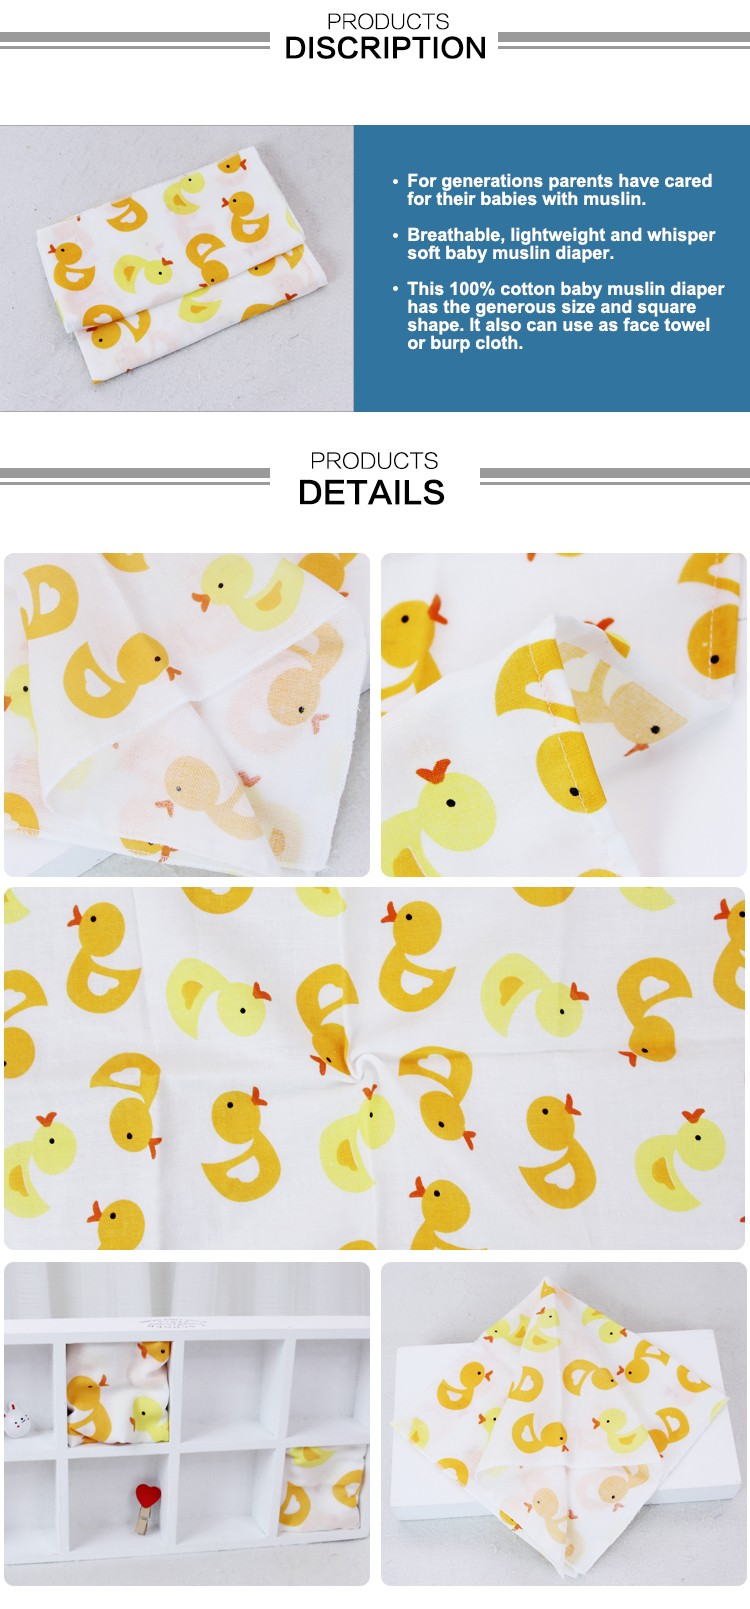 MOD 330 Manufactory supply 100% cotton fabric printed cloth diapers